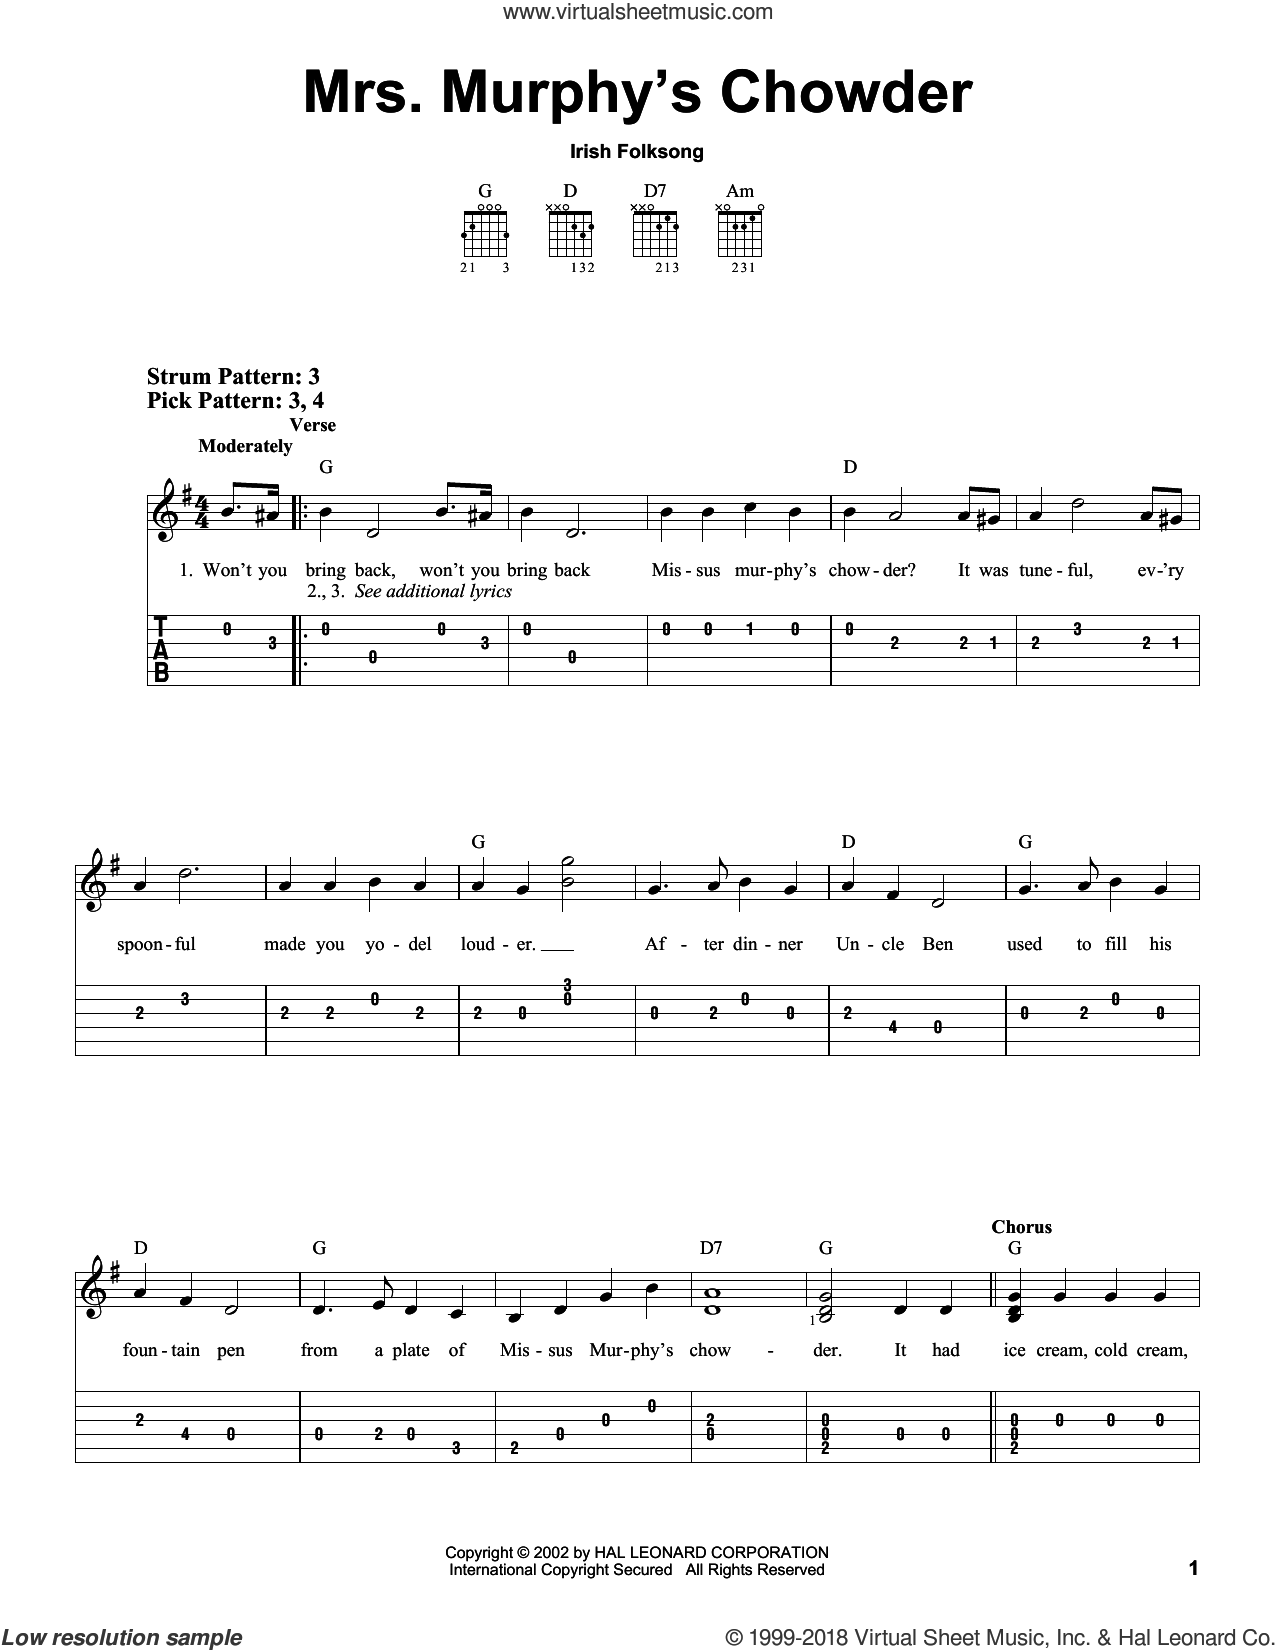 Mrs. Murphy's Chowder sheet music for guitar solo (easy tablature)